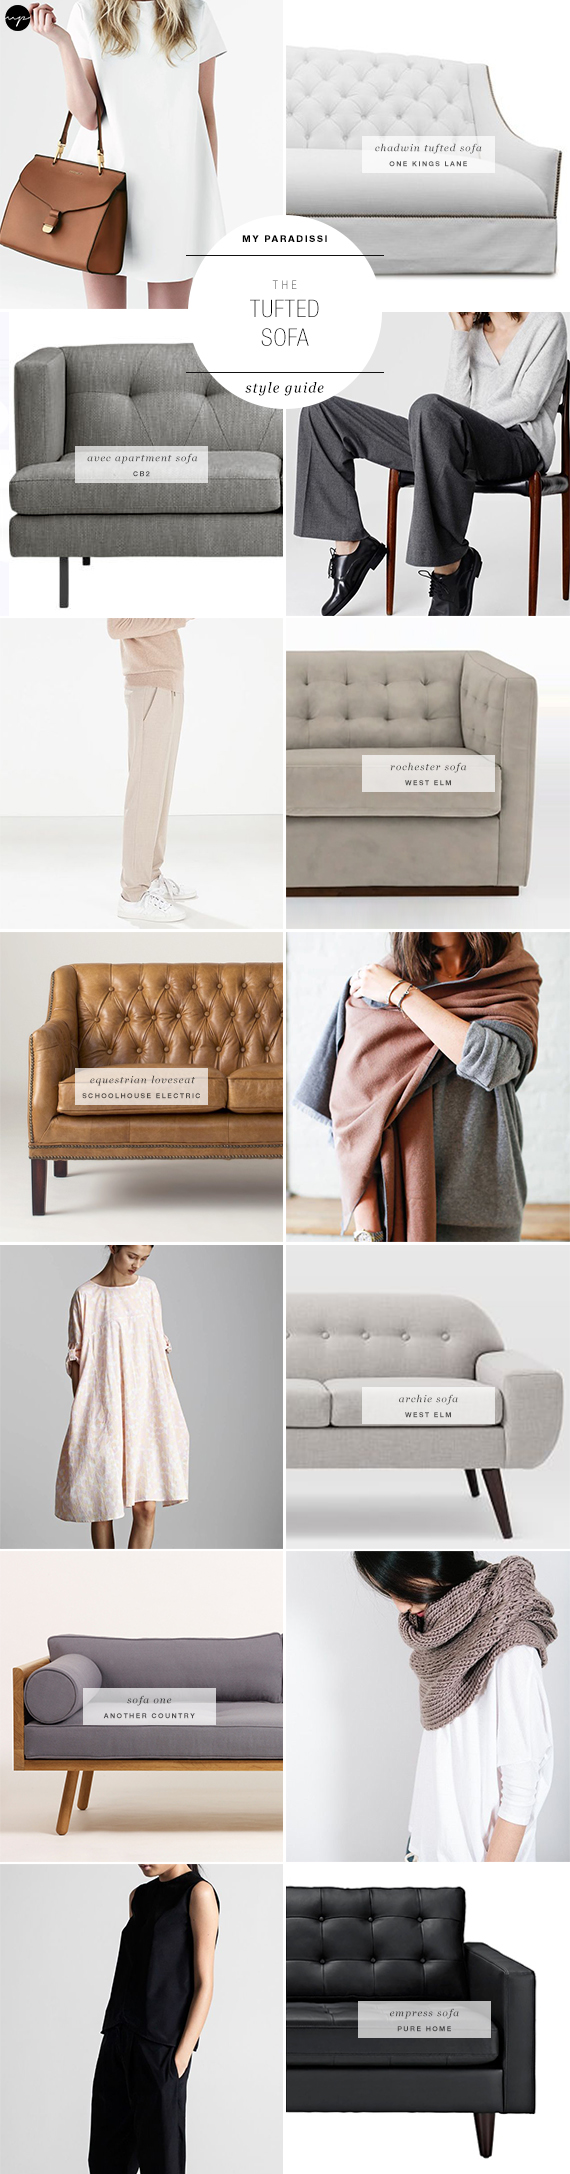 The tufted sofa style guide | My Paradissi